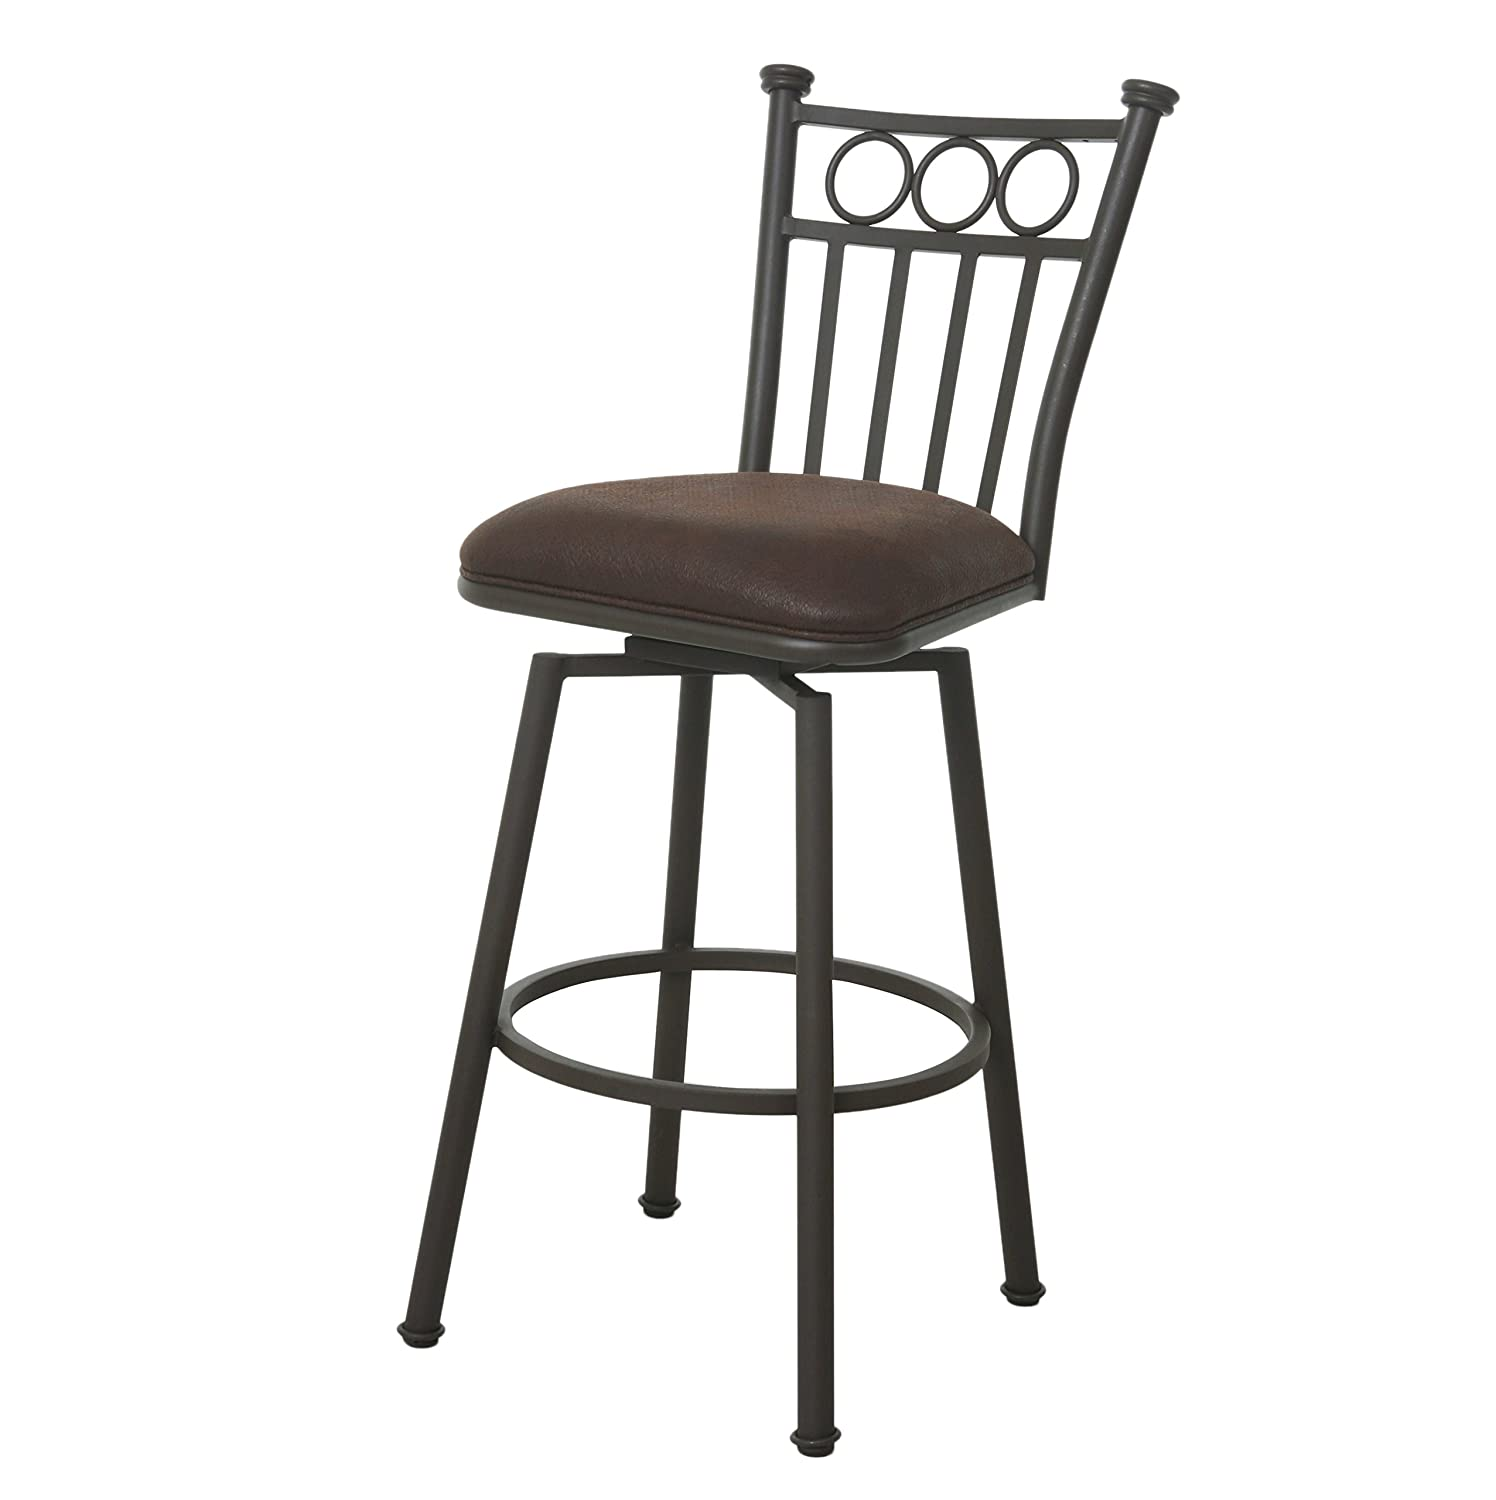 Impacterra QLBO249218097 Bostonian II Bar Stool Bronze